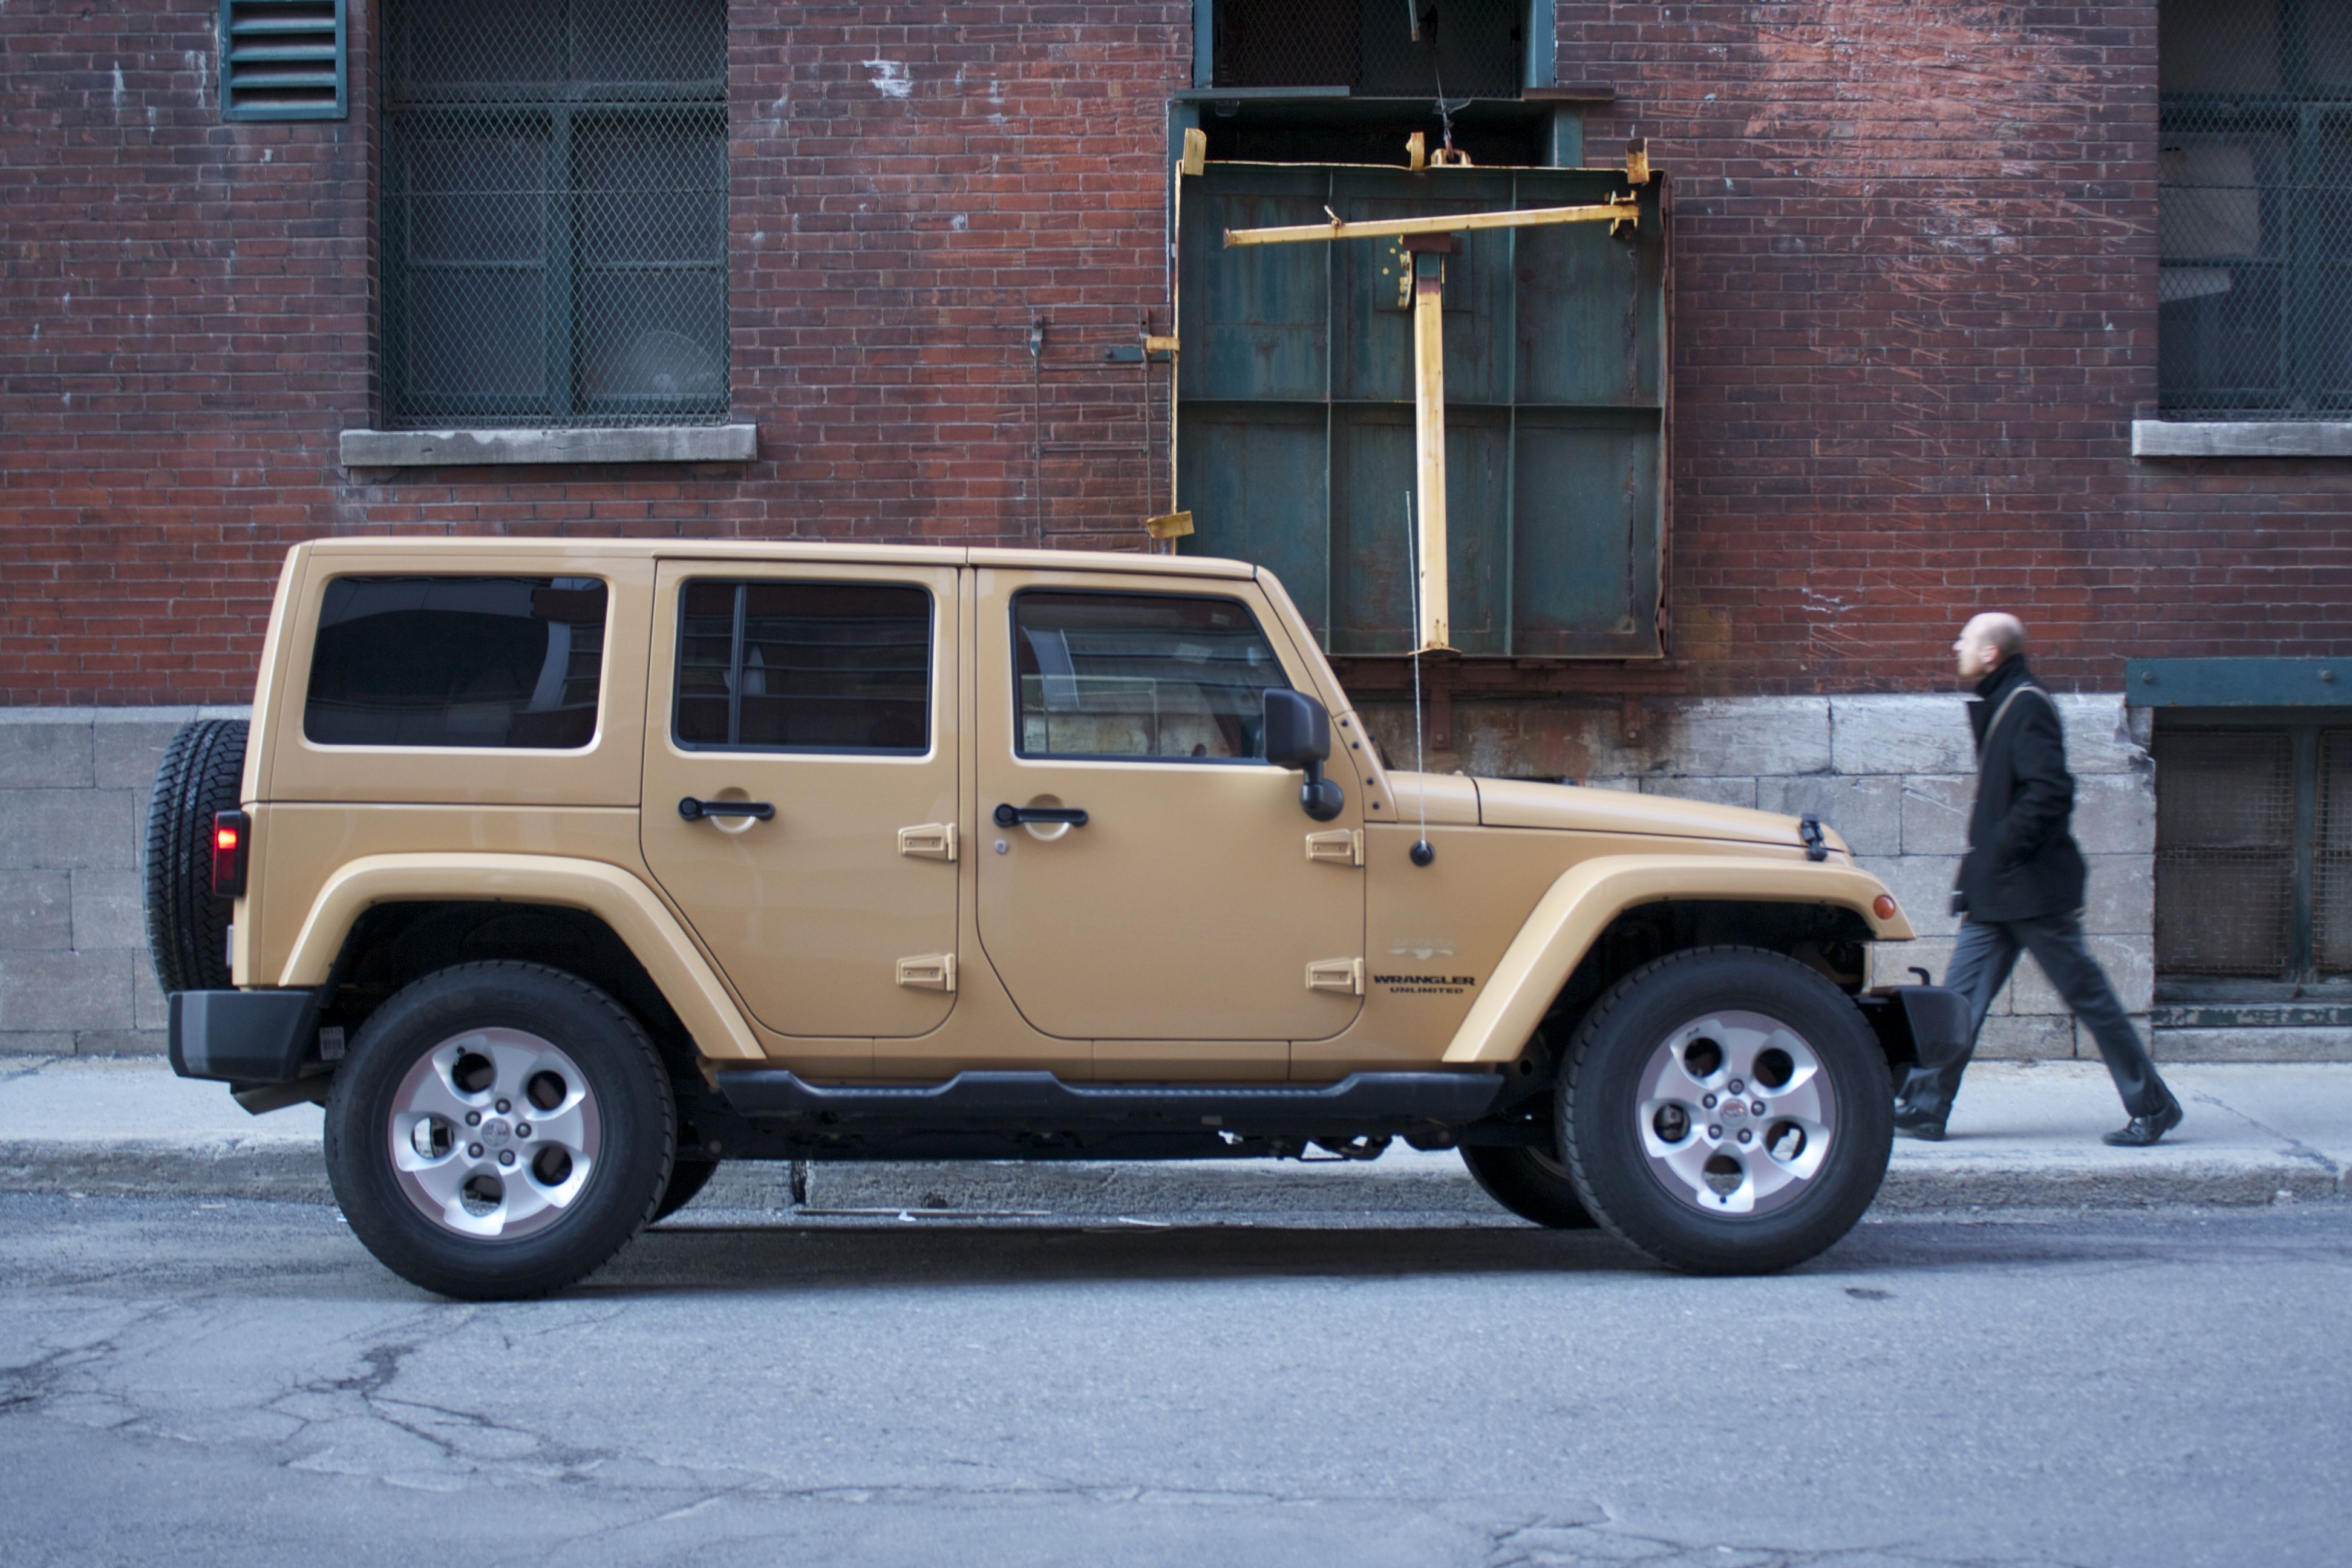 2014 jeep wrangler unlimited sahara 4x4 side view. Black Bedroom Furniture Sets. Home Design Ideas